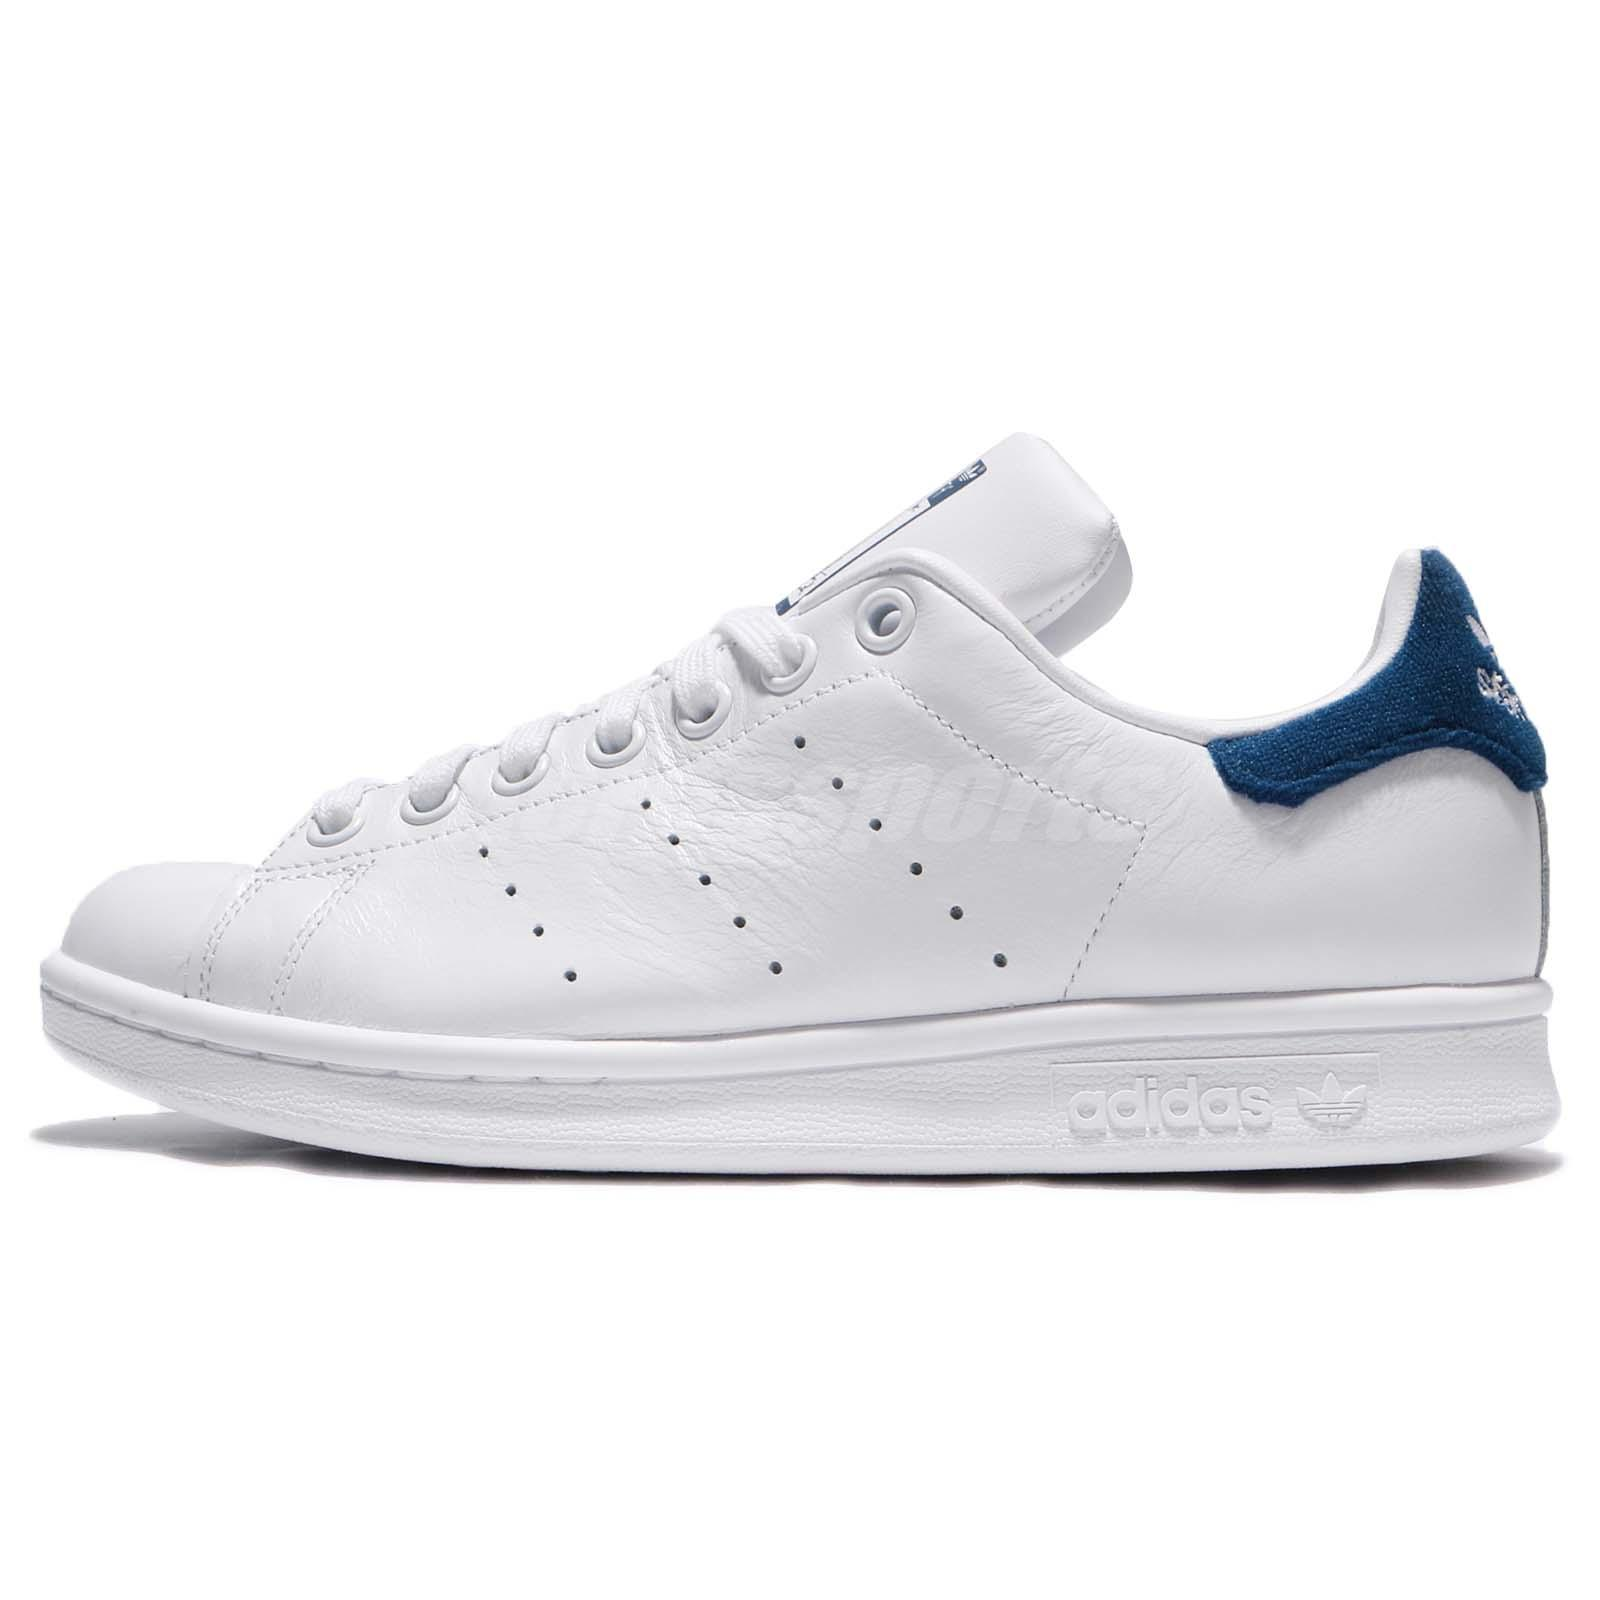 adidas original stan smith white